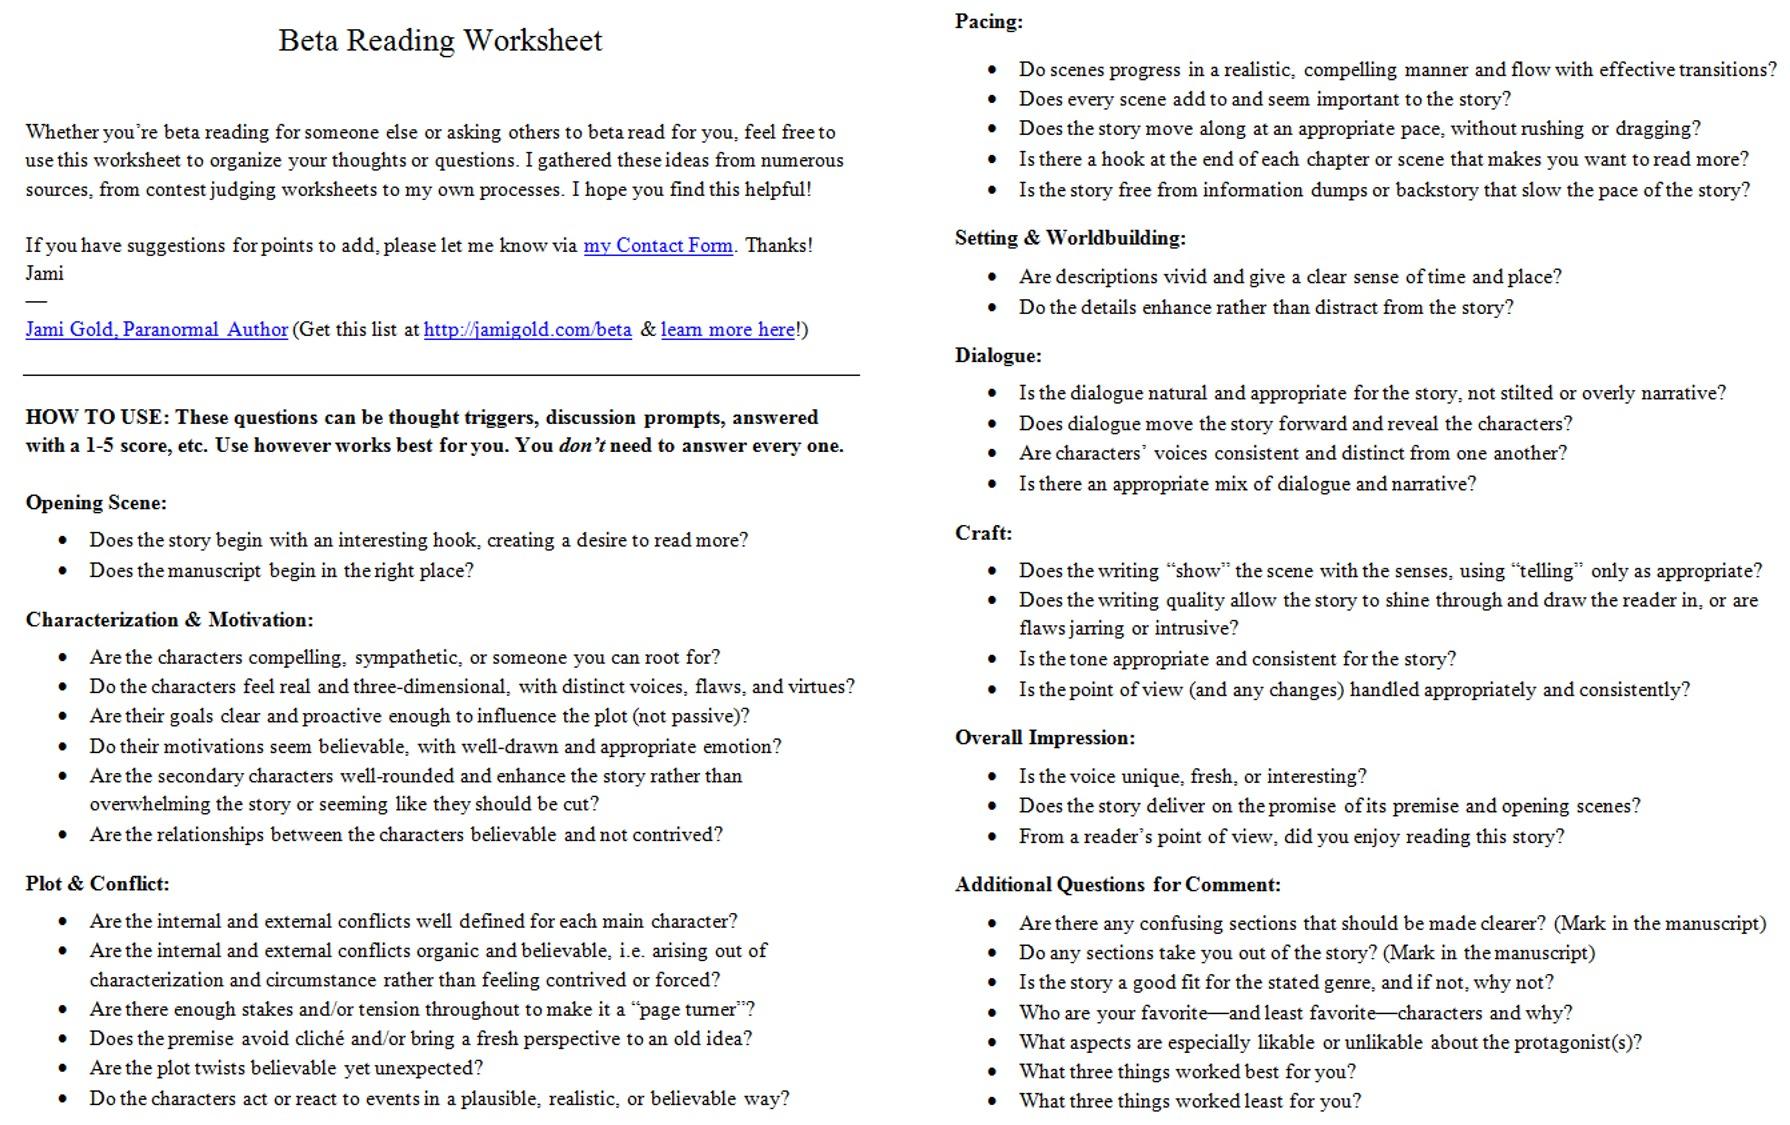 Proatmealus  Ravishing Worksheets For Writers  Jami Gold Paranormal Author With Handsome Screen Shot Of The Twopage Beta Reading Worksheet With Delectable Present Progressive Tense Worksheets Also Worksheet For Toddlers In Addition States And Capitals Matching Worksheet And Perimeter Area And Scale Factor Worksheet As Well As Money Printable Worksheets Additionally Dividing Whole Numbers By Decimals Worksheet From Jamigoldcom With Proatmealus  Handsome Worksheets For Writers  Jami Gold Paranormal Author With Delectable Screen Shot Of The Twopage Beta Reading Worksheet And Ravishing Present Progressive Tense Worksheets Also Worksheet For Toddlers In Addition States And Capitals Matching Worksheet From Jamigoldcom